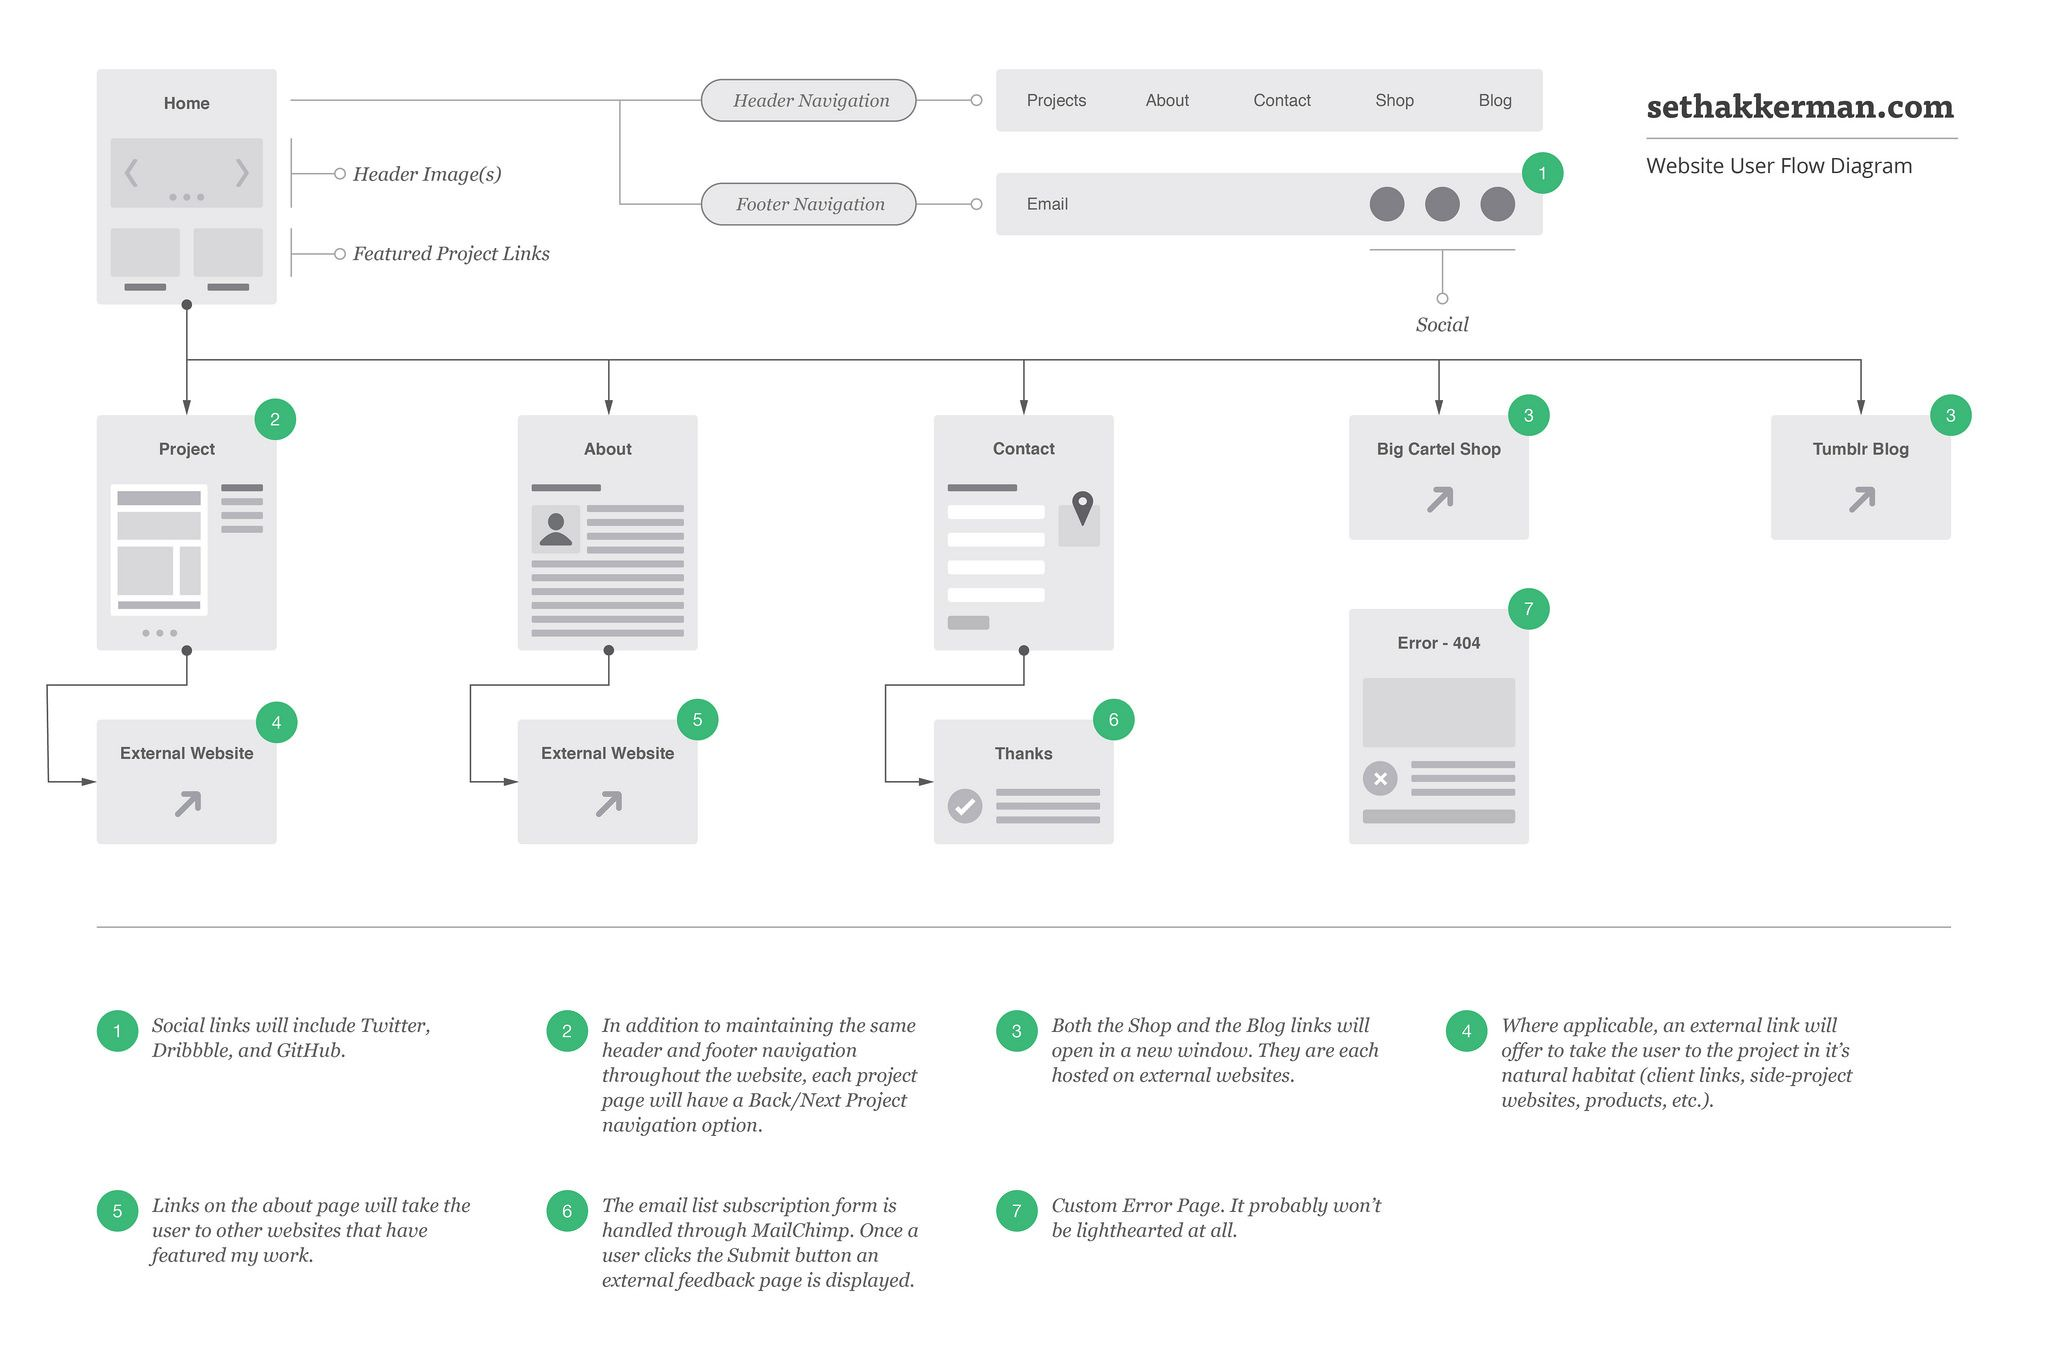 small resolution of website user flow diagram seth akkerman webdesign web page design flow chart web design flow diagram